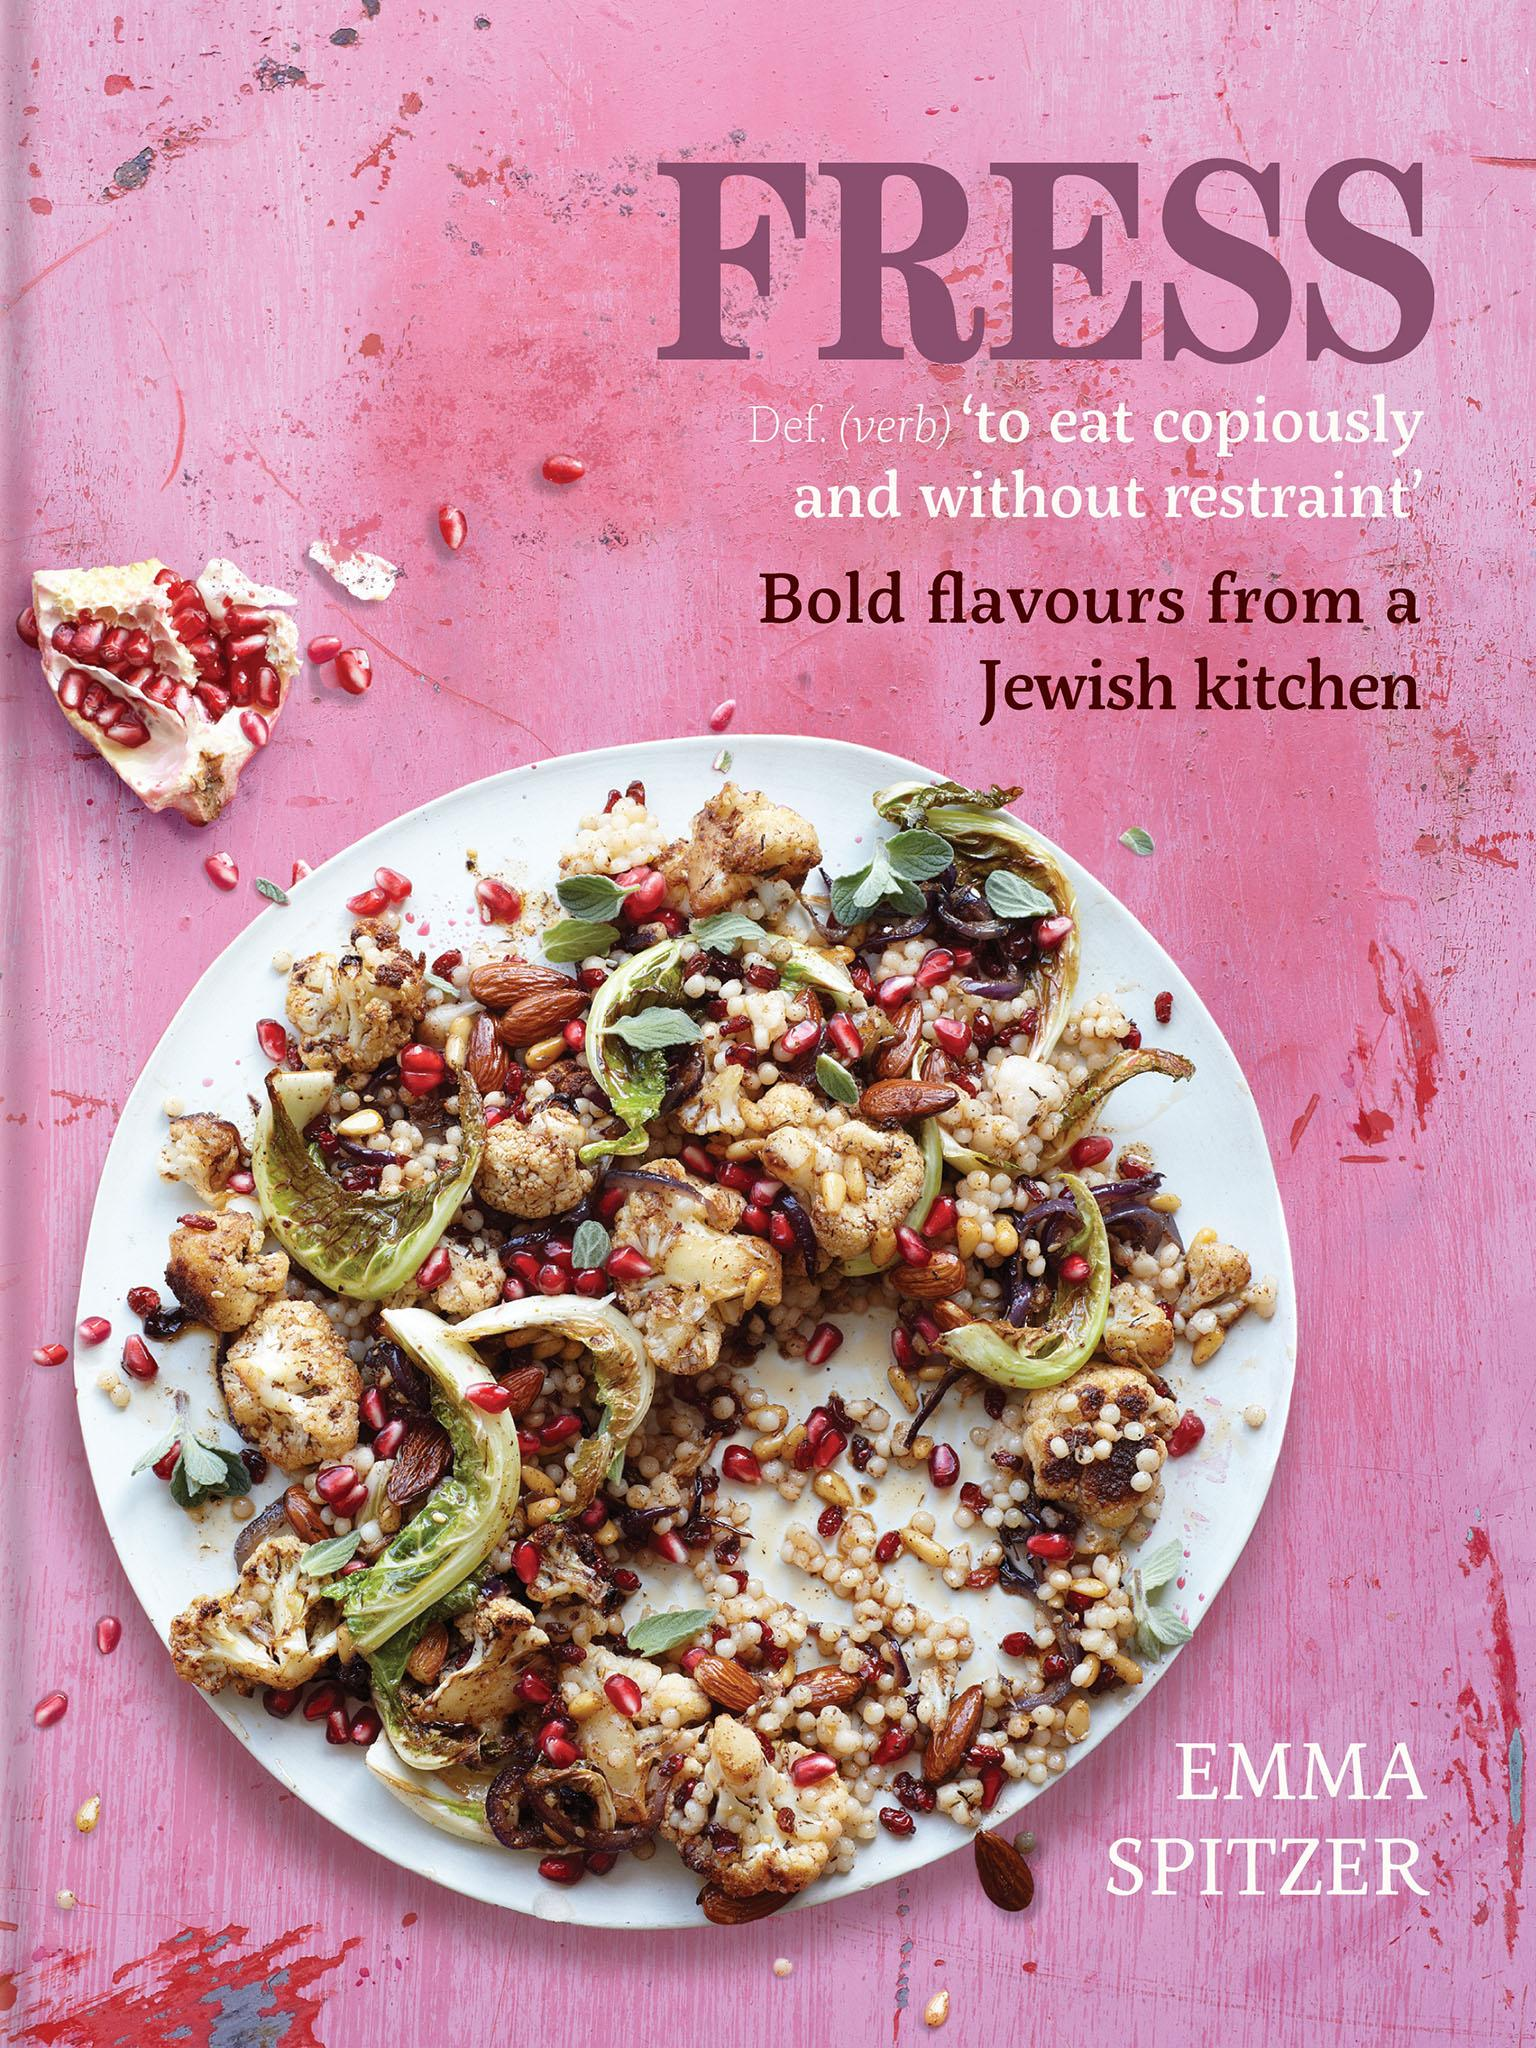 Fress recipes from pomegranate salmon to chicken and pistaschio blanch the cauliflower in a large saucepan of salted boiling water for 2 minutes then drain in a colander and refresh under cold running water to stop any forumfinder Image collections